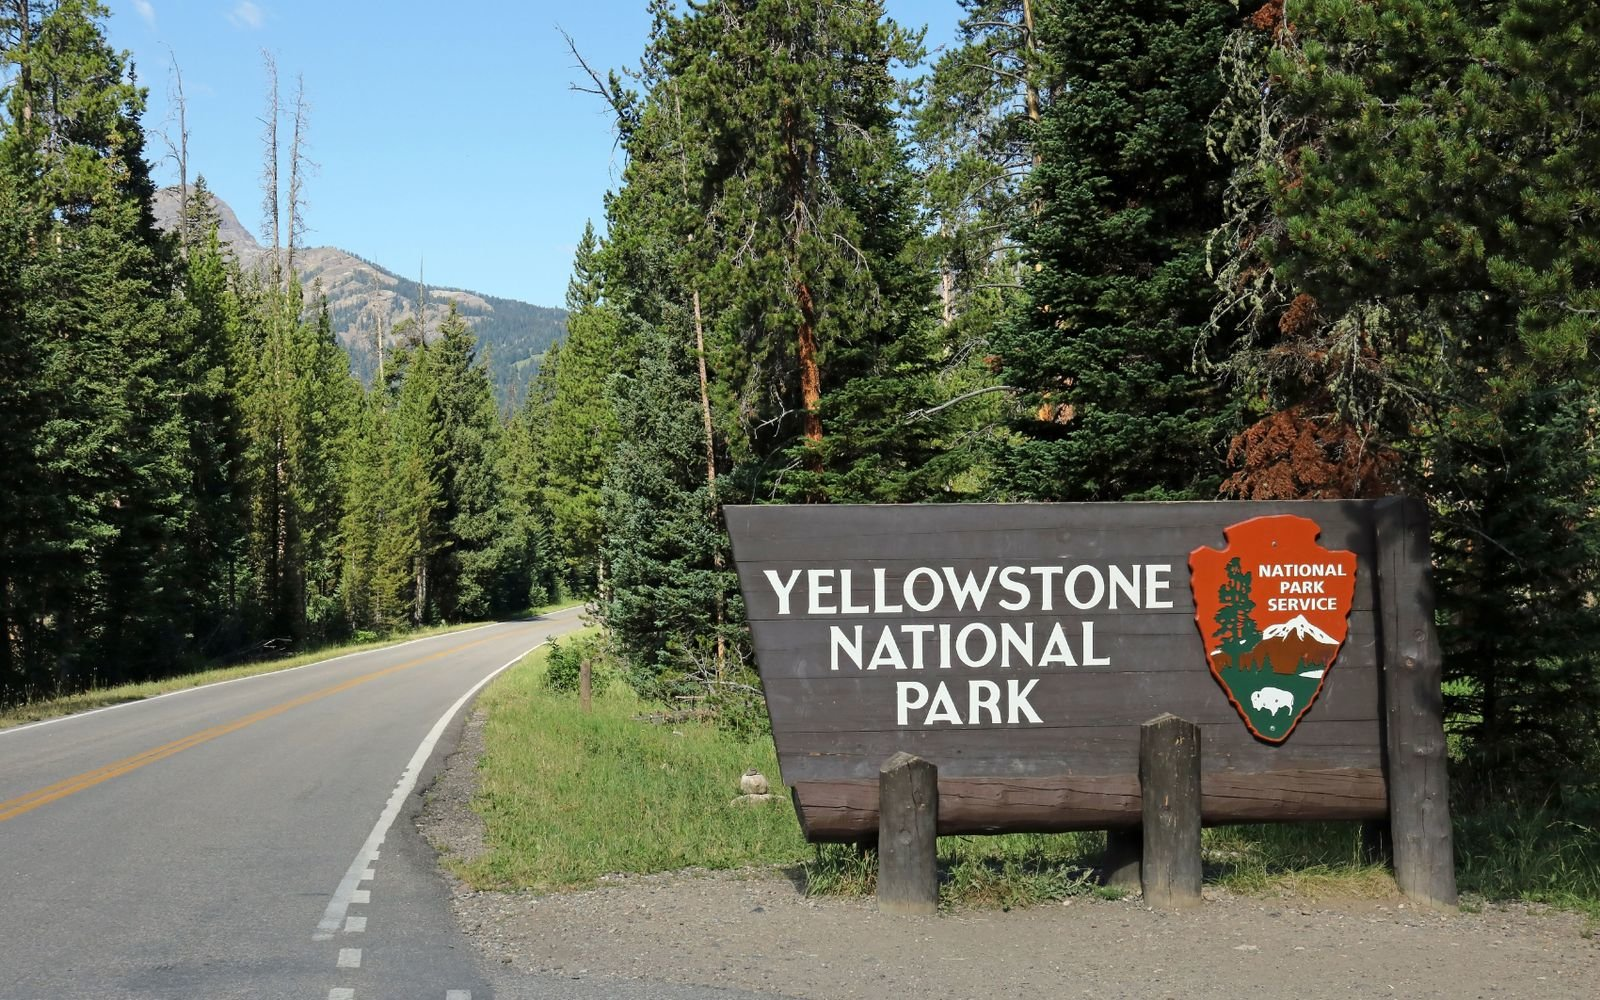 9 of 12 National Park Service advisory board members submit resignations